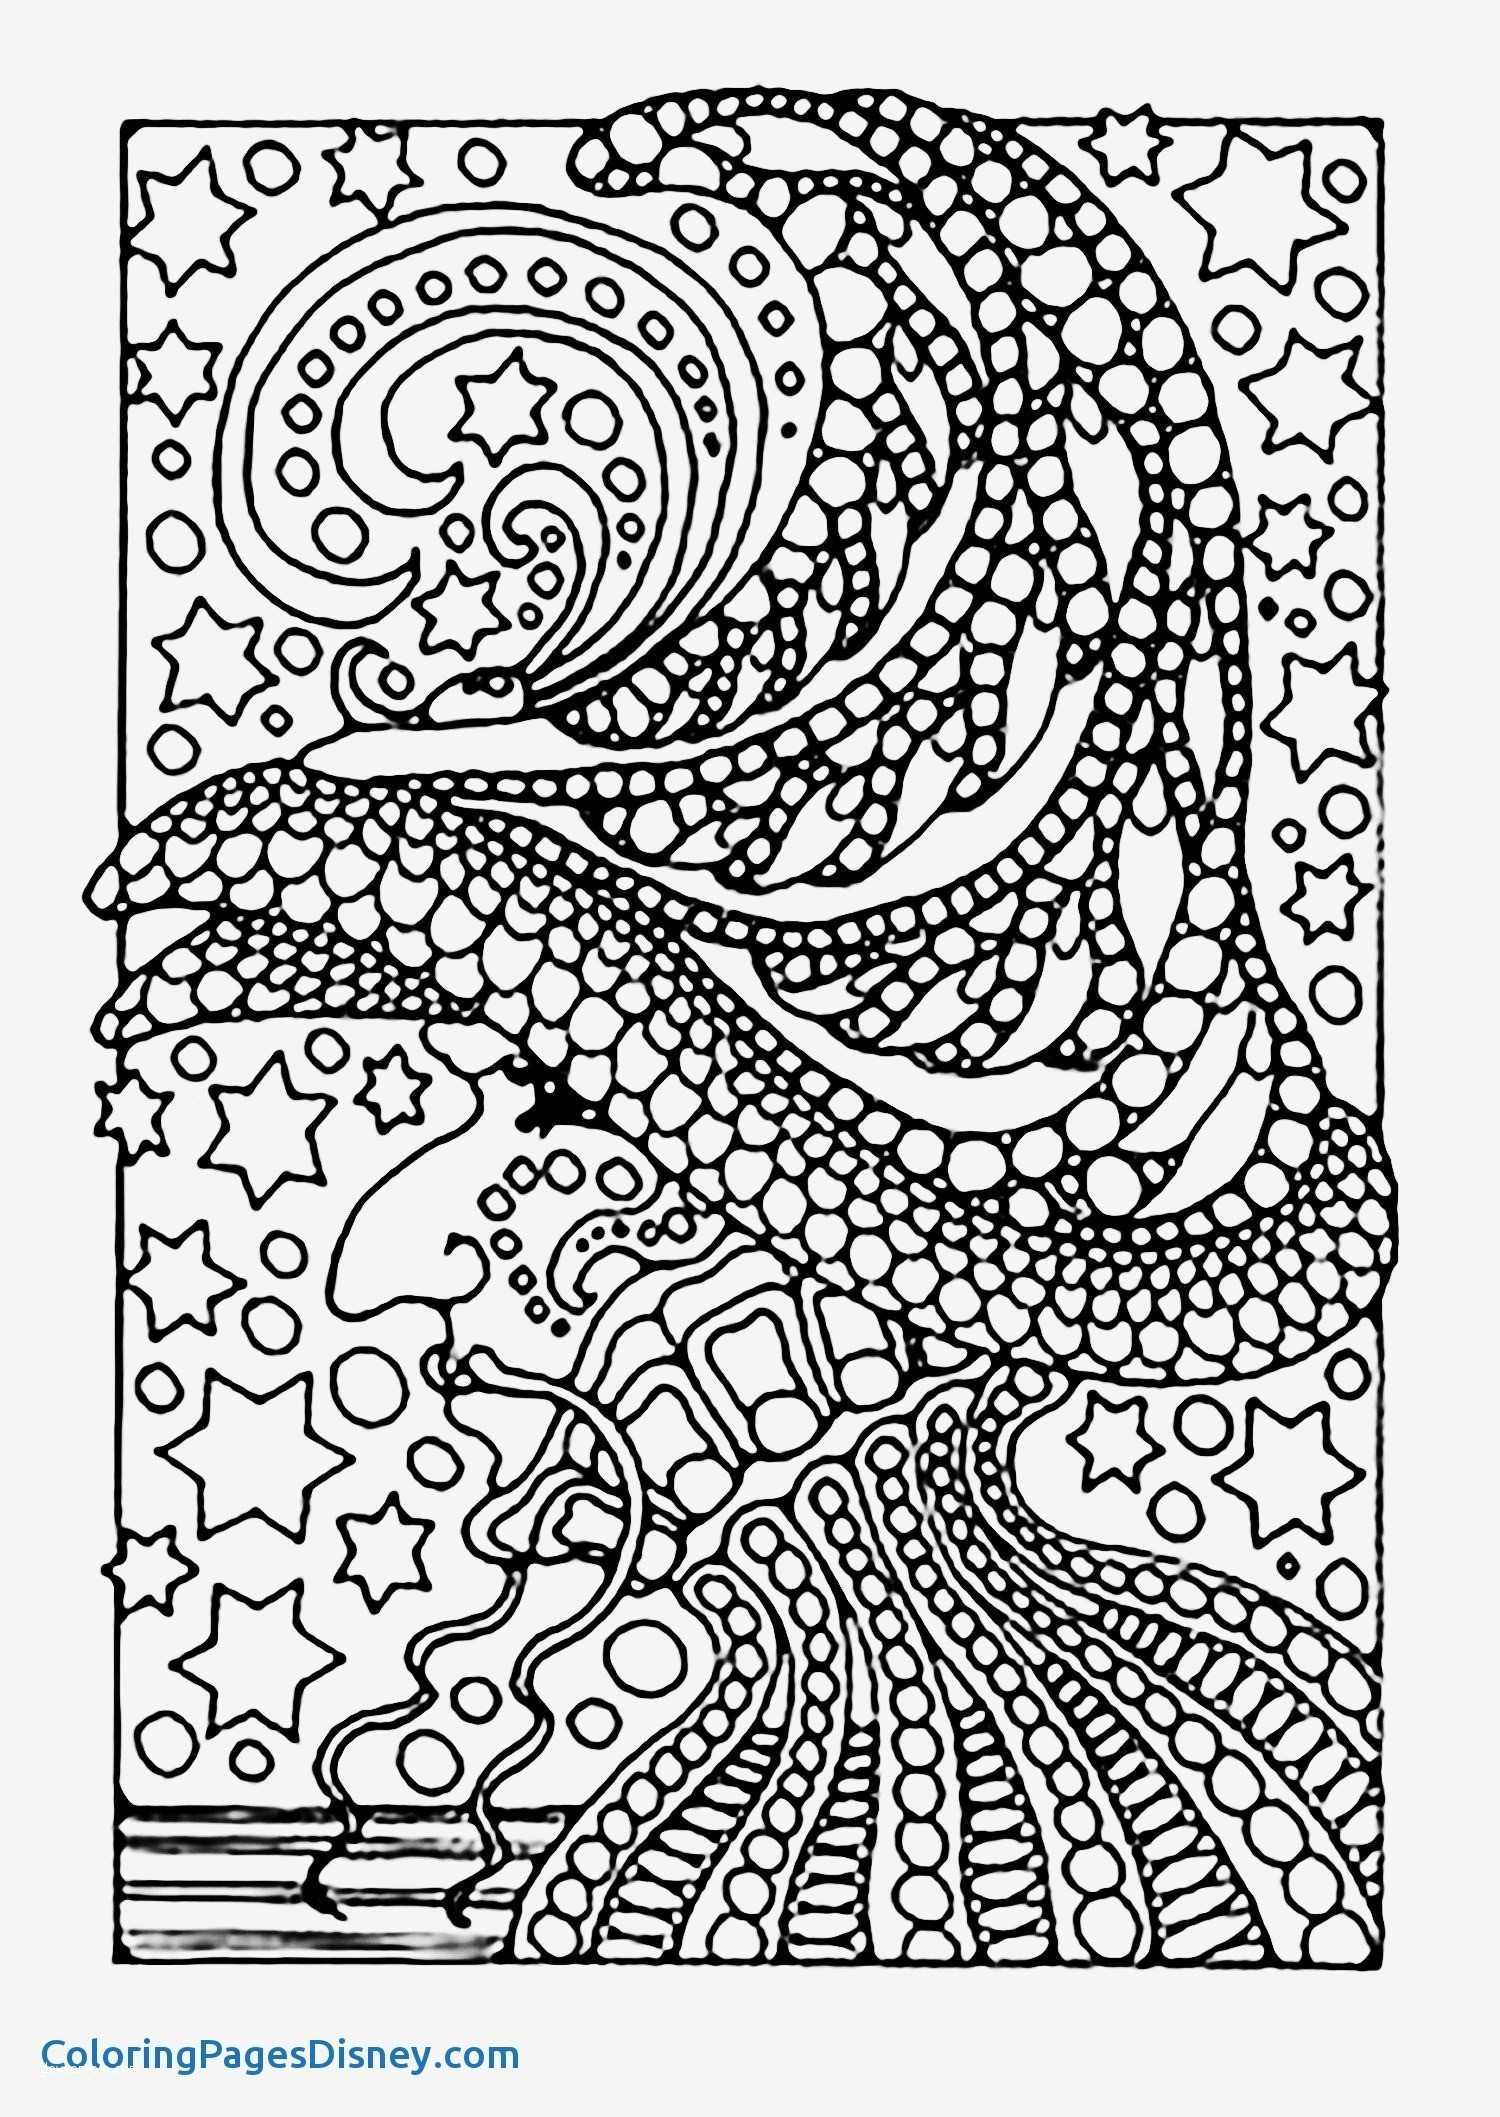 free personalized wedding coloring pages wedding coloring pages bride and groom pages coloring free personalized wedding